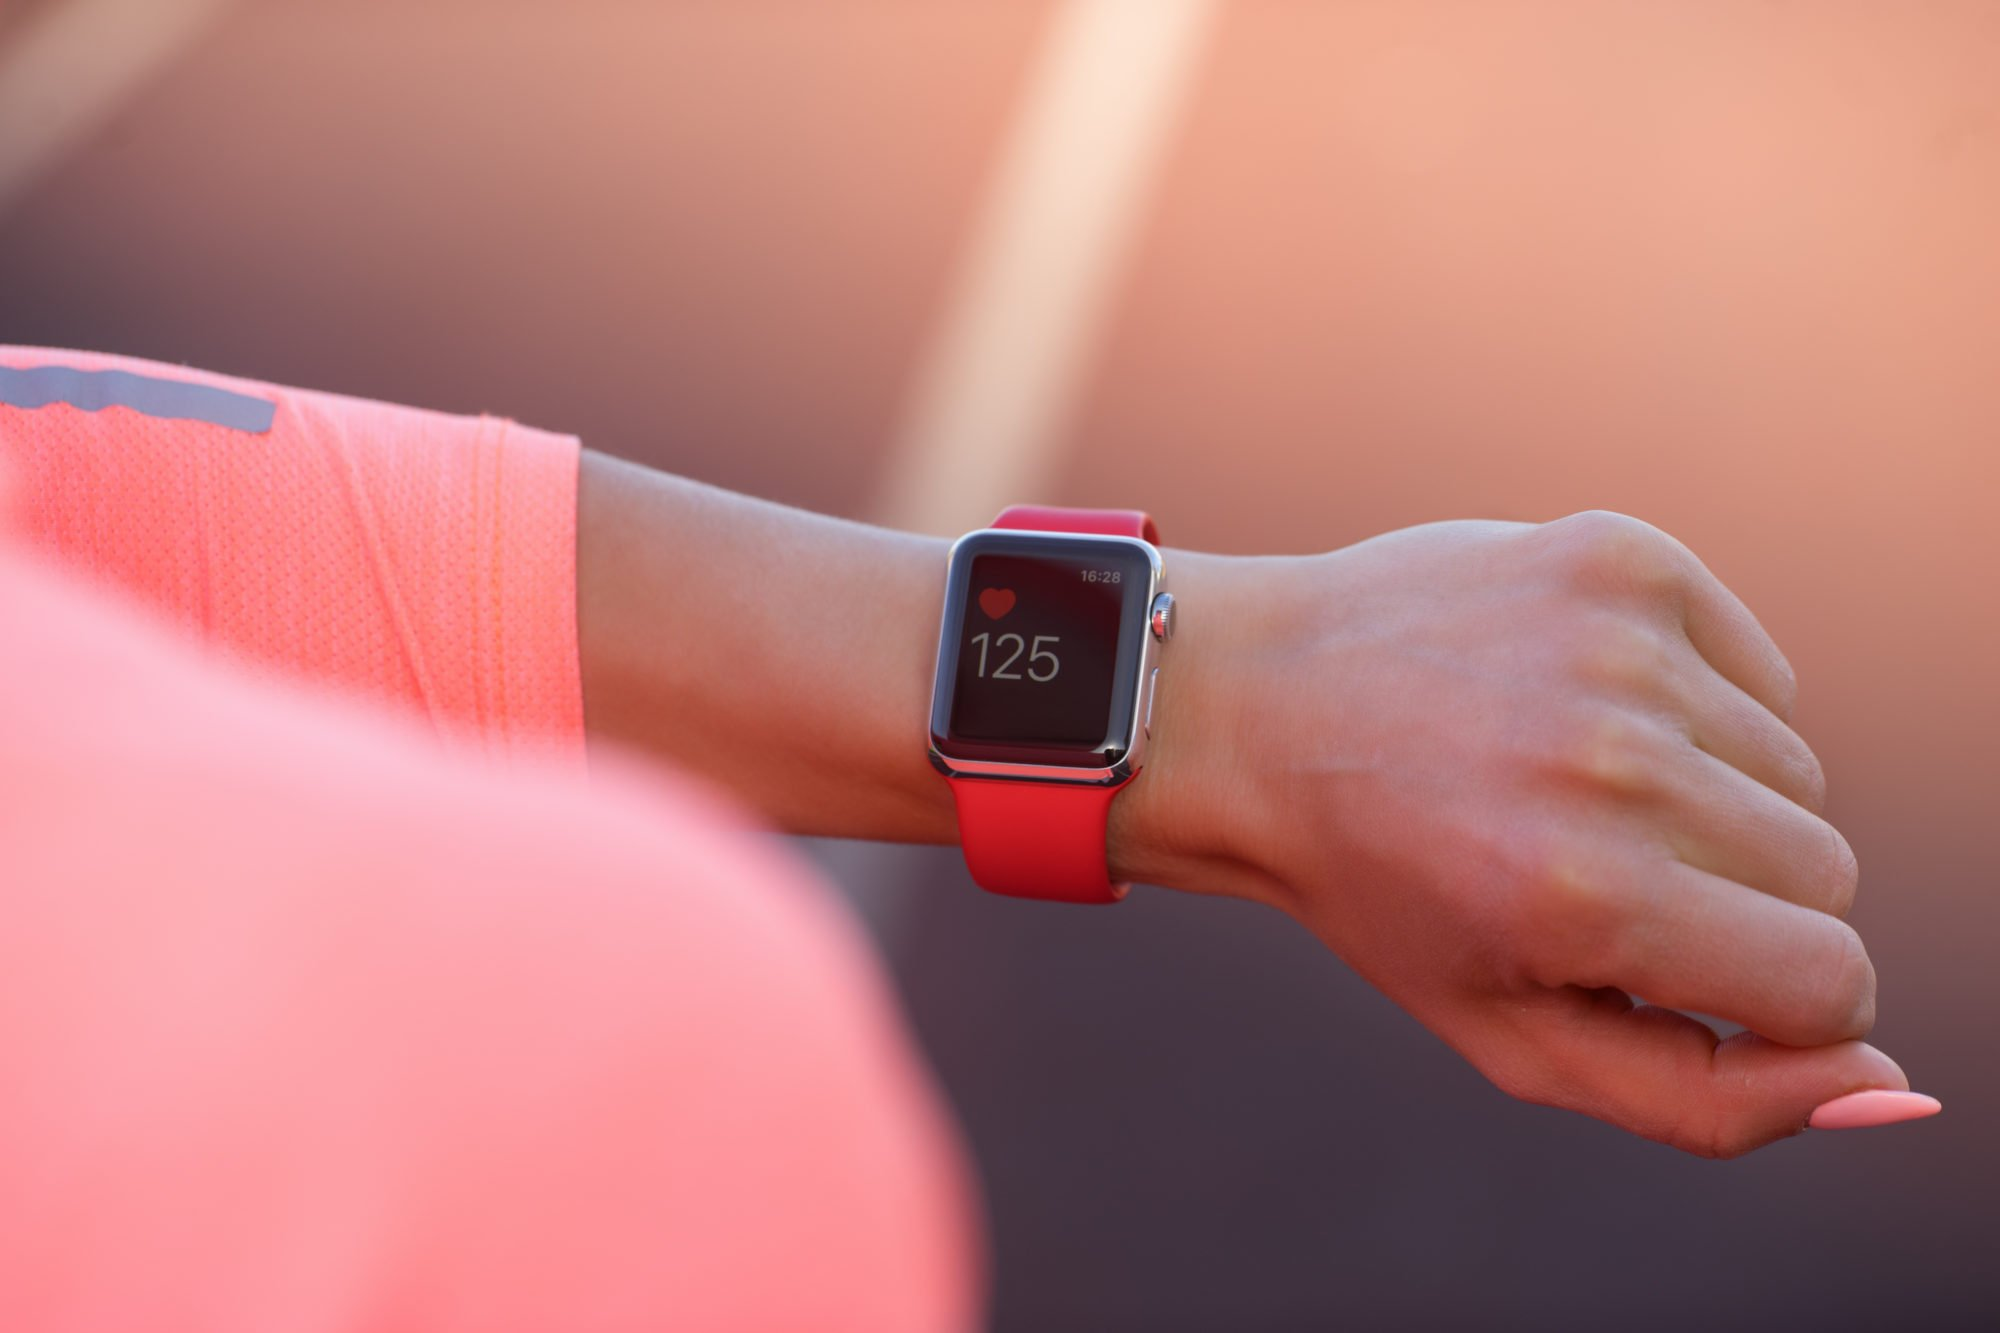 The Effective Workout: Interval Training